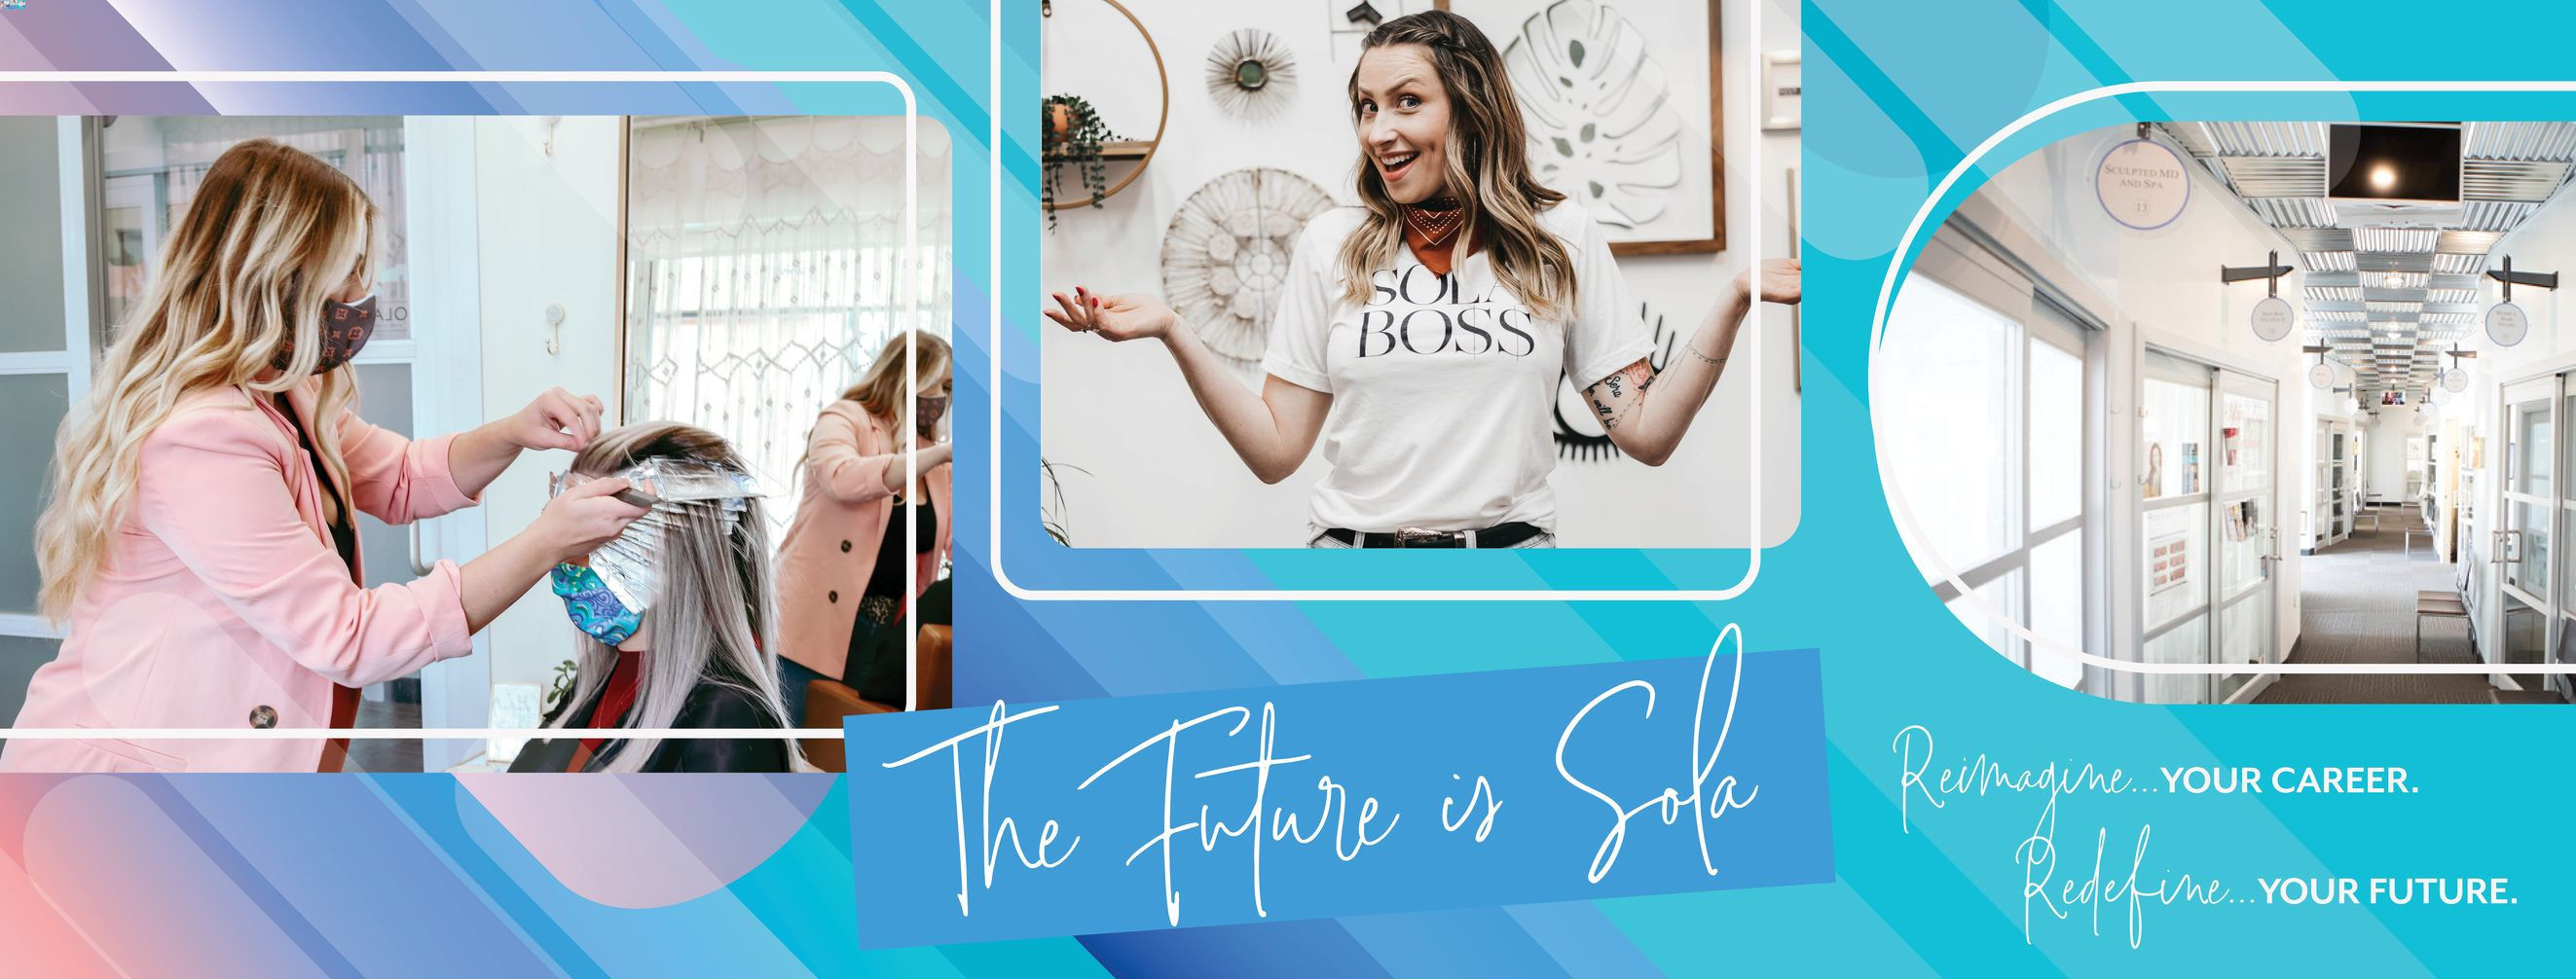 The future is Sola. Reimagine your career. Redefine your future.